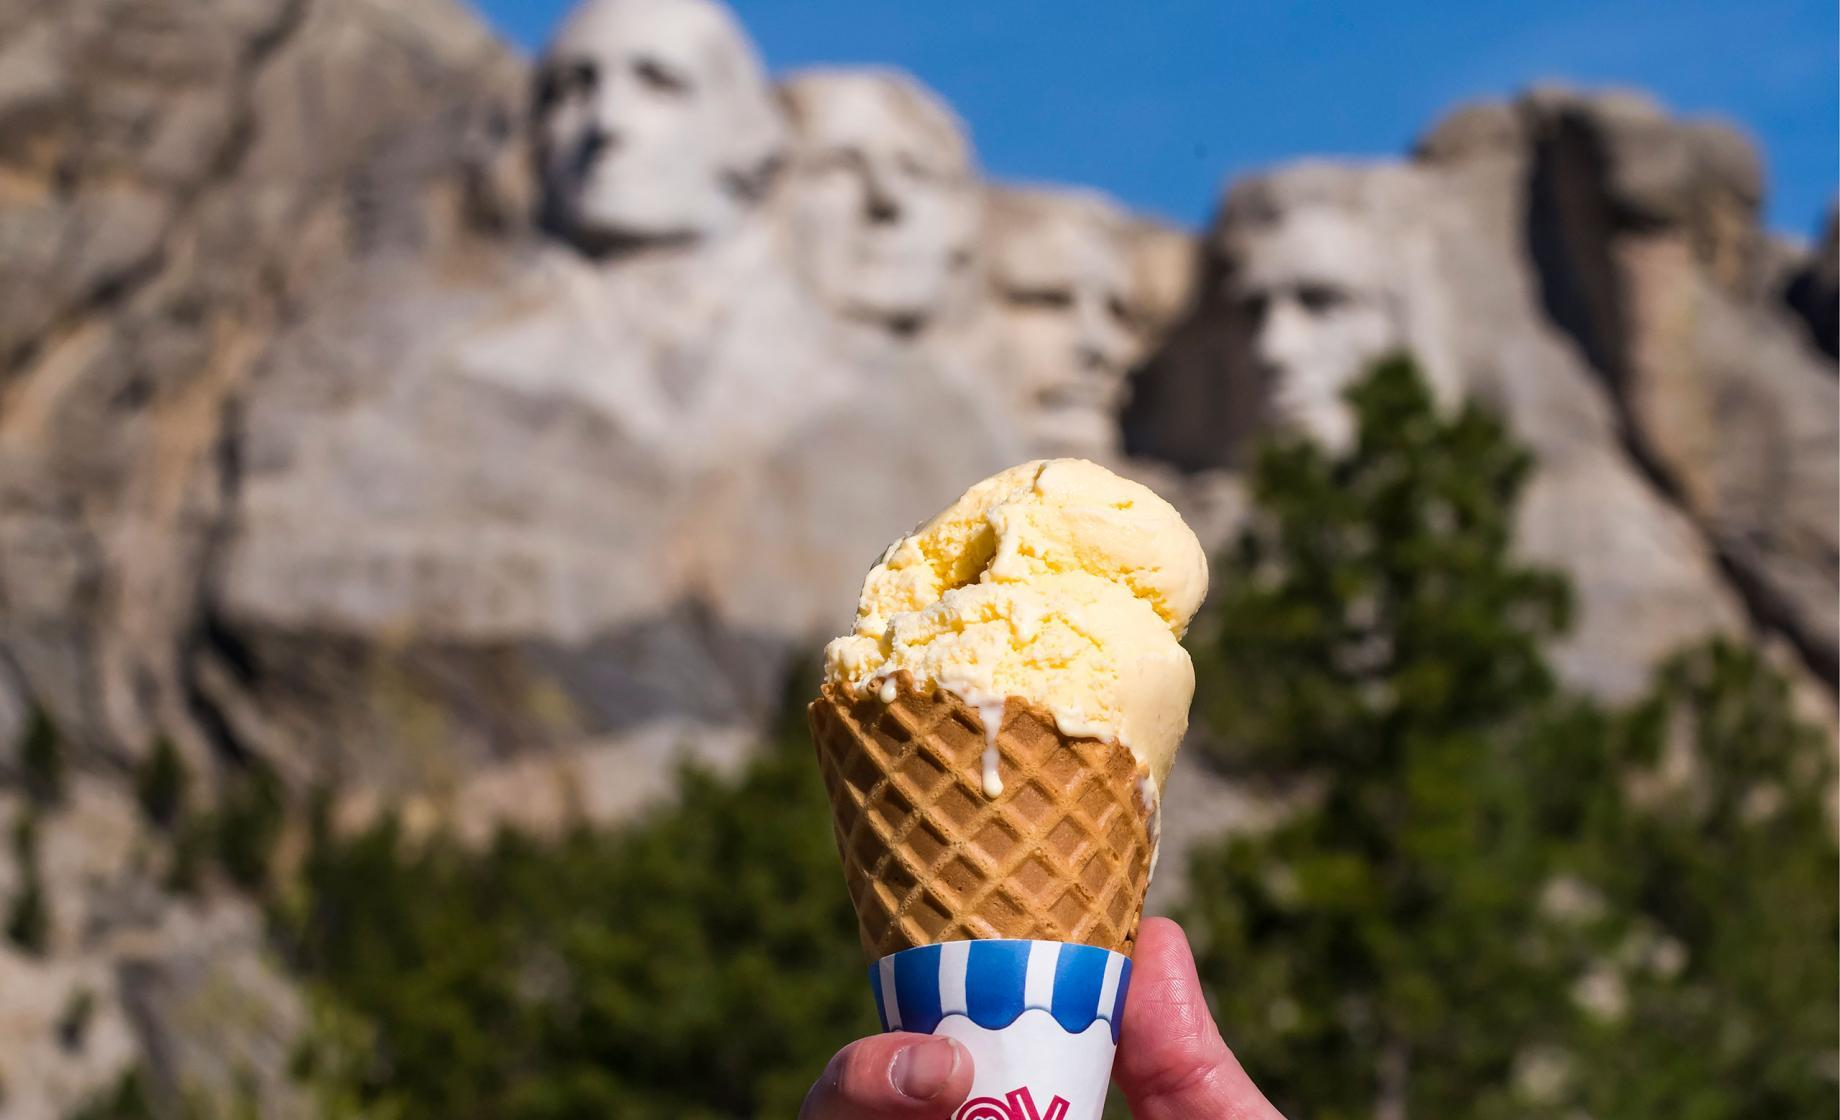 Mount Rushmore Ice Cream